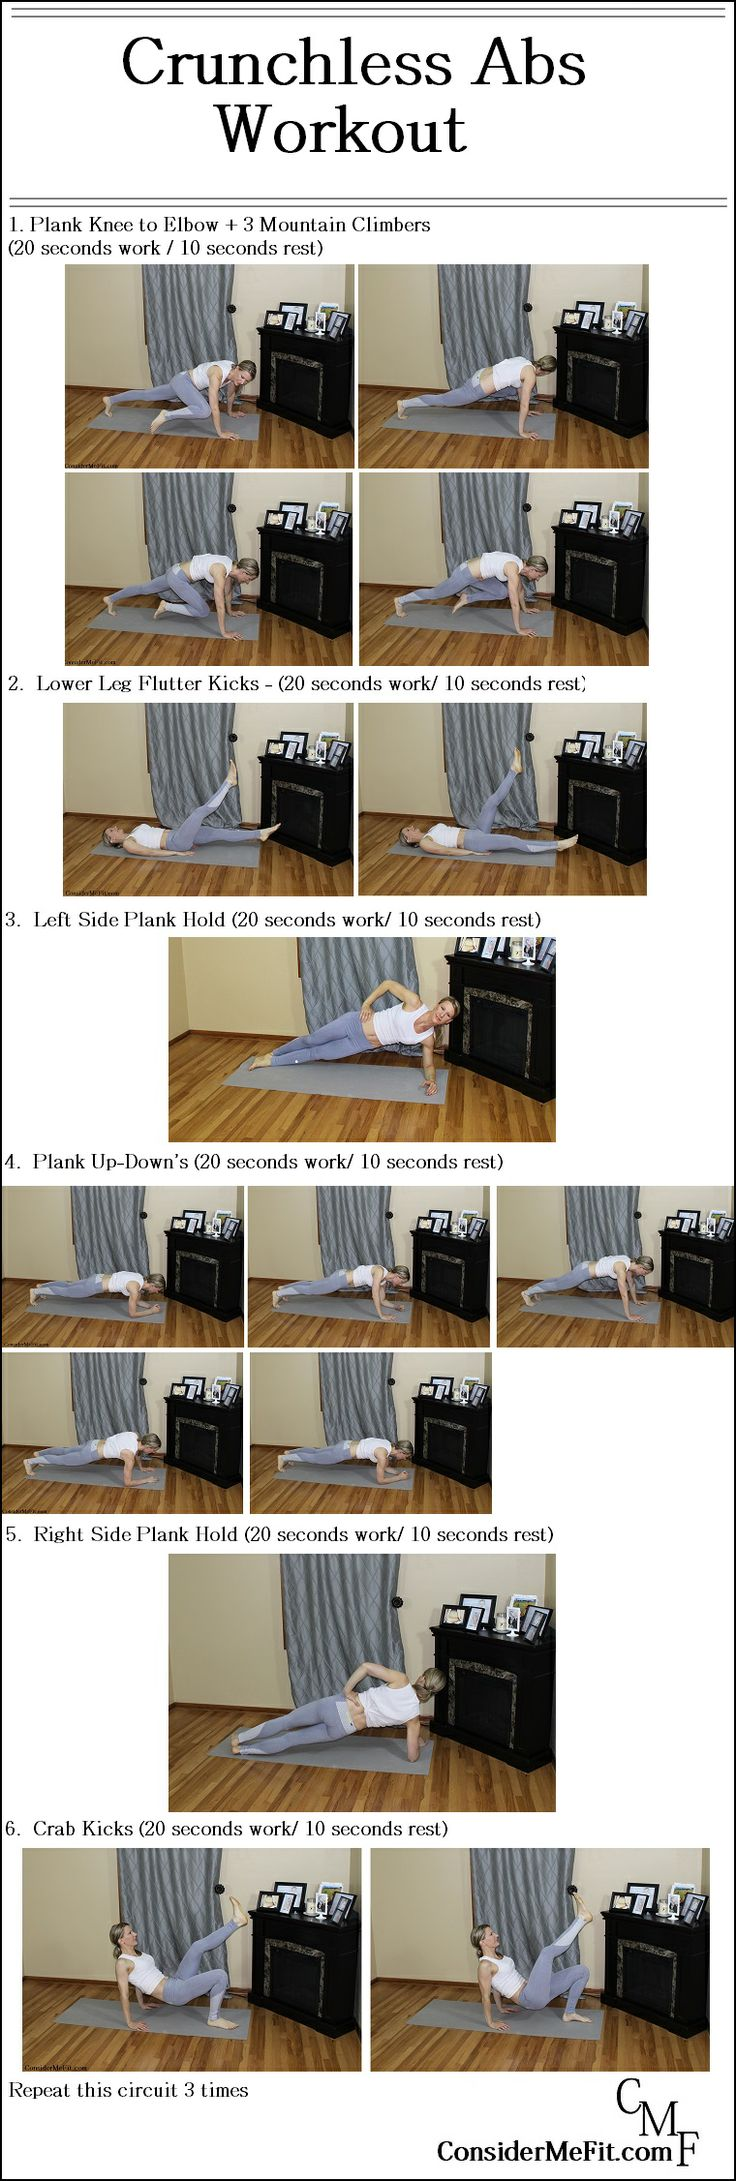 Crunchless Abs Workout - ZERO crunches!  Some of the best abdominal exercises involve no crunches (sit-up's) what-so-ever.